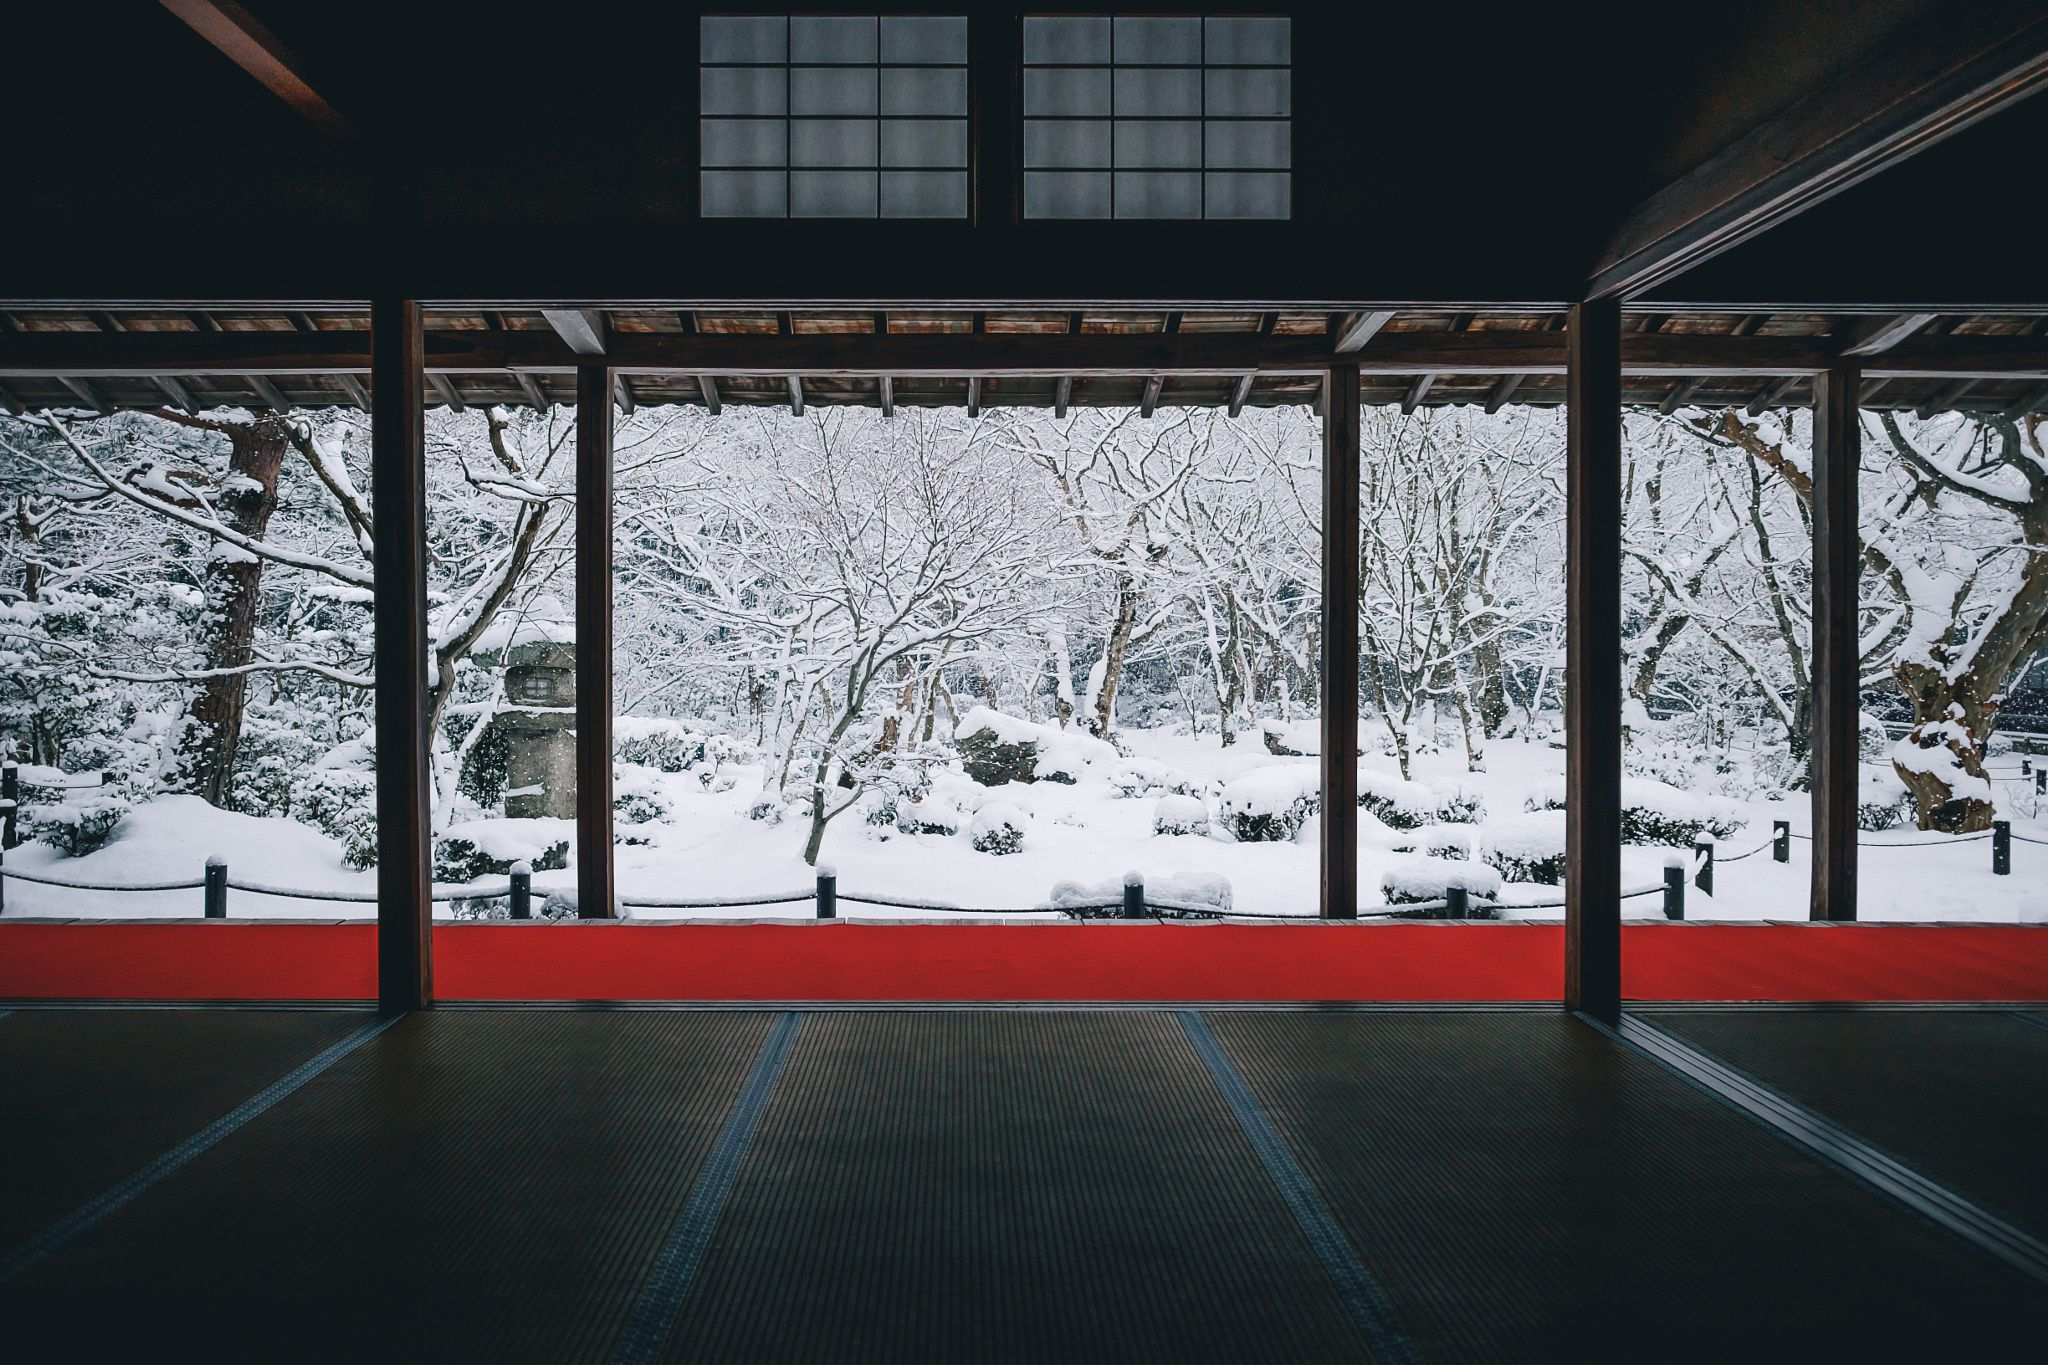 Winter in Kyoto by Takashi Yasui on 500px